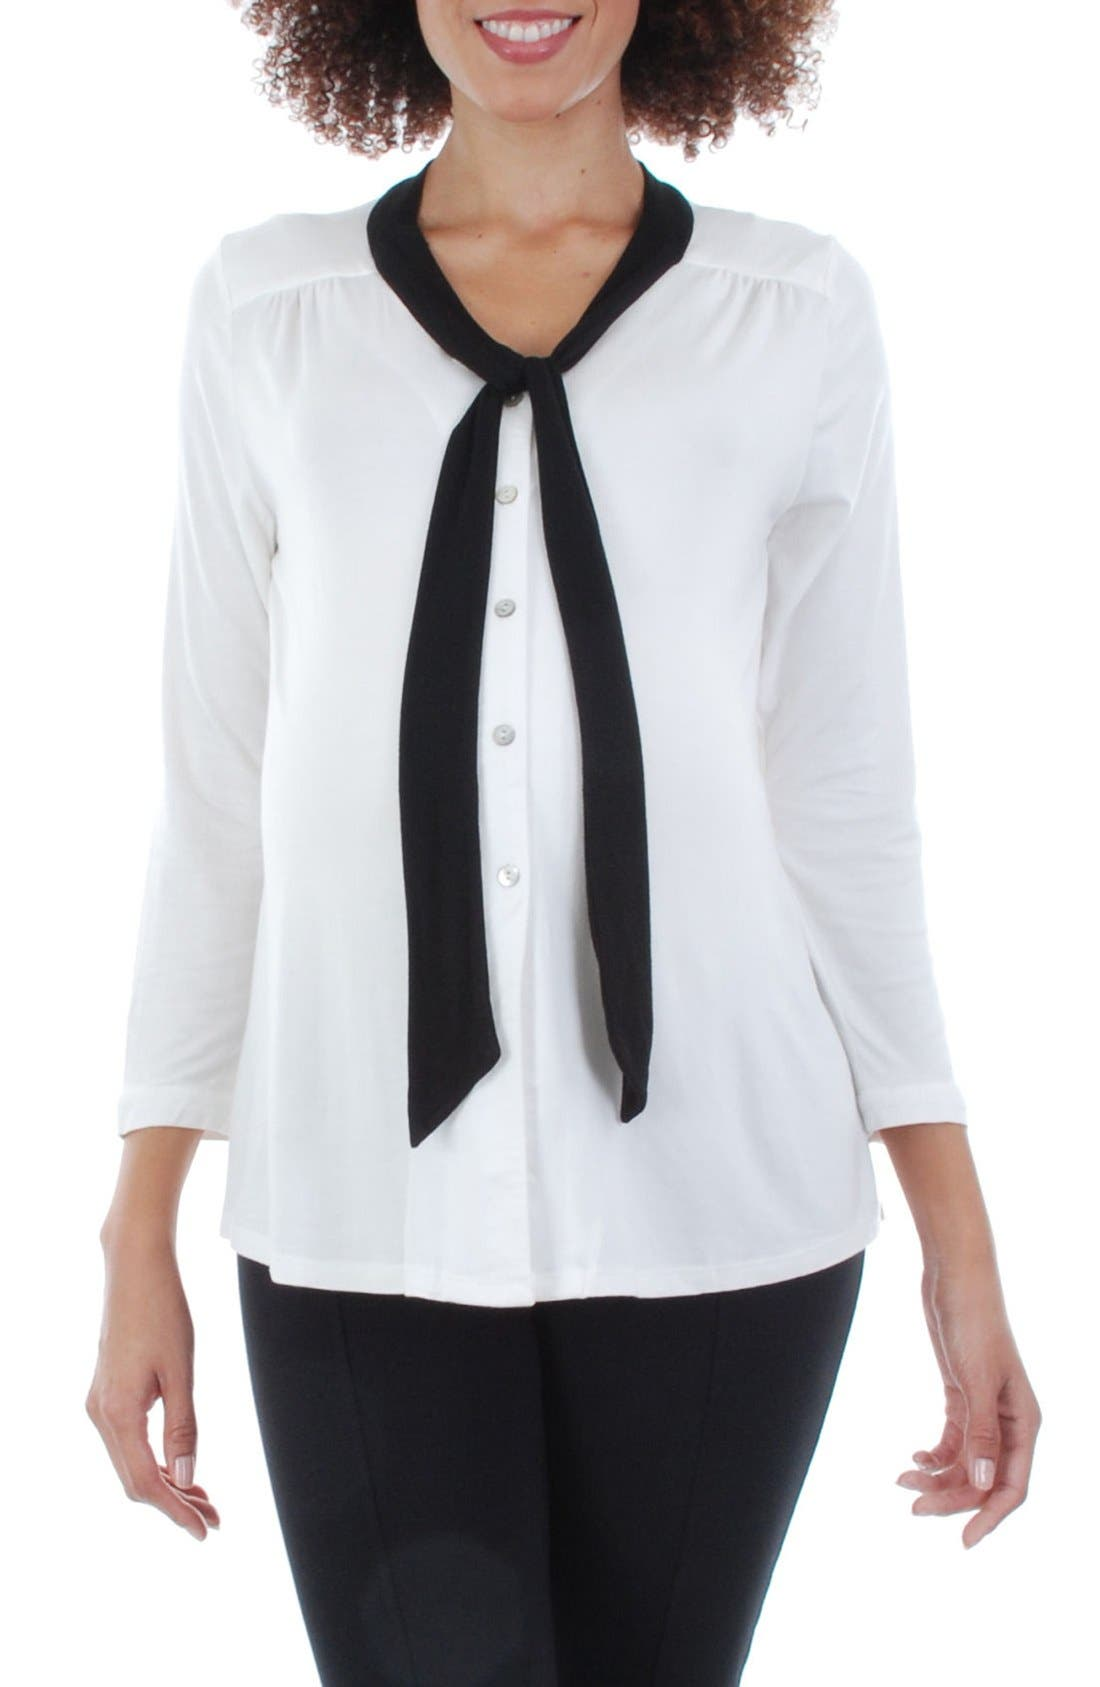 Everly Grey 'Kitty' Tie Neck Maternity Top